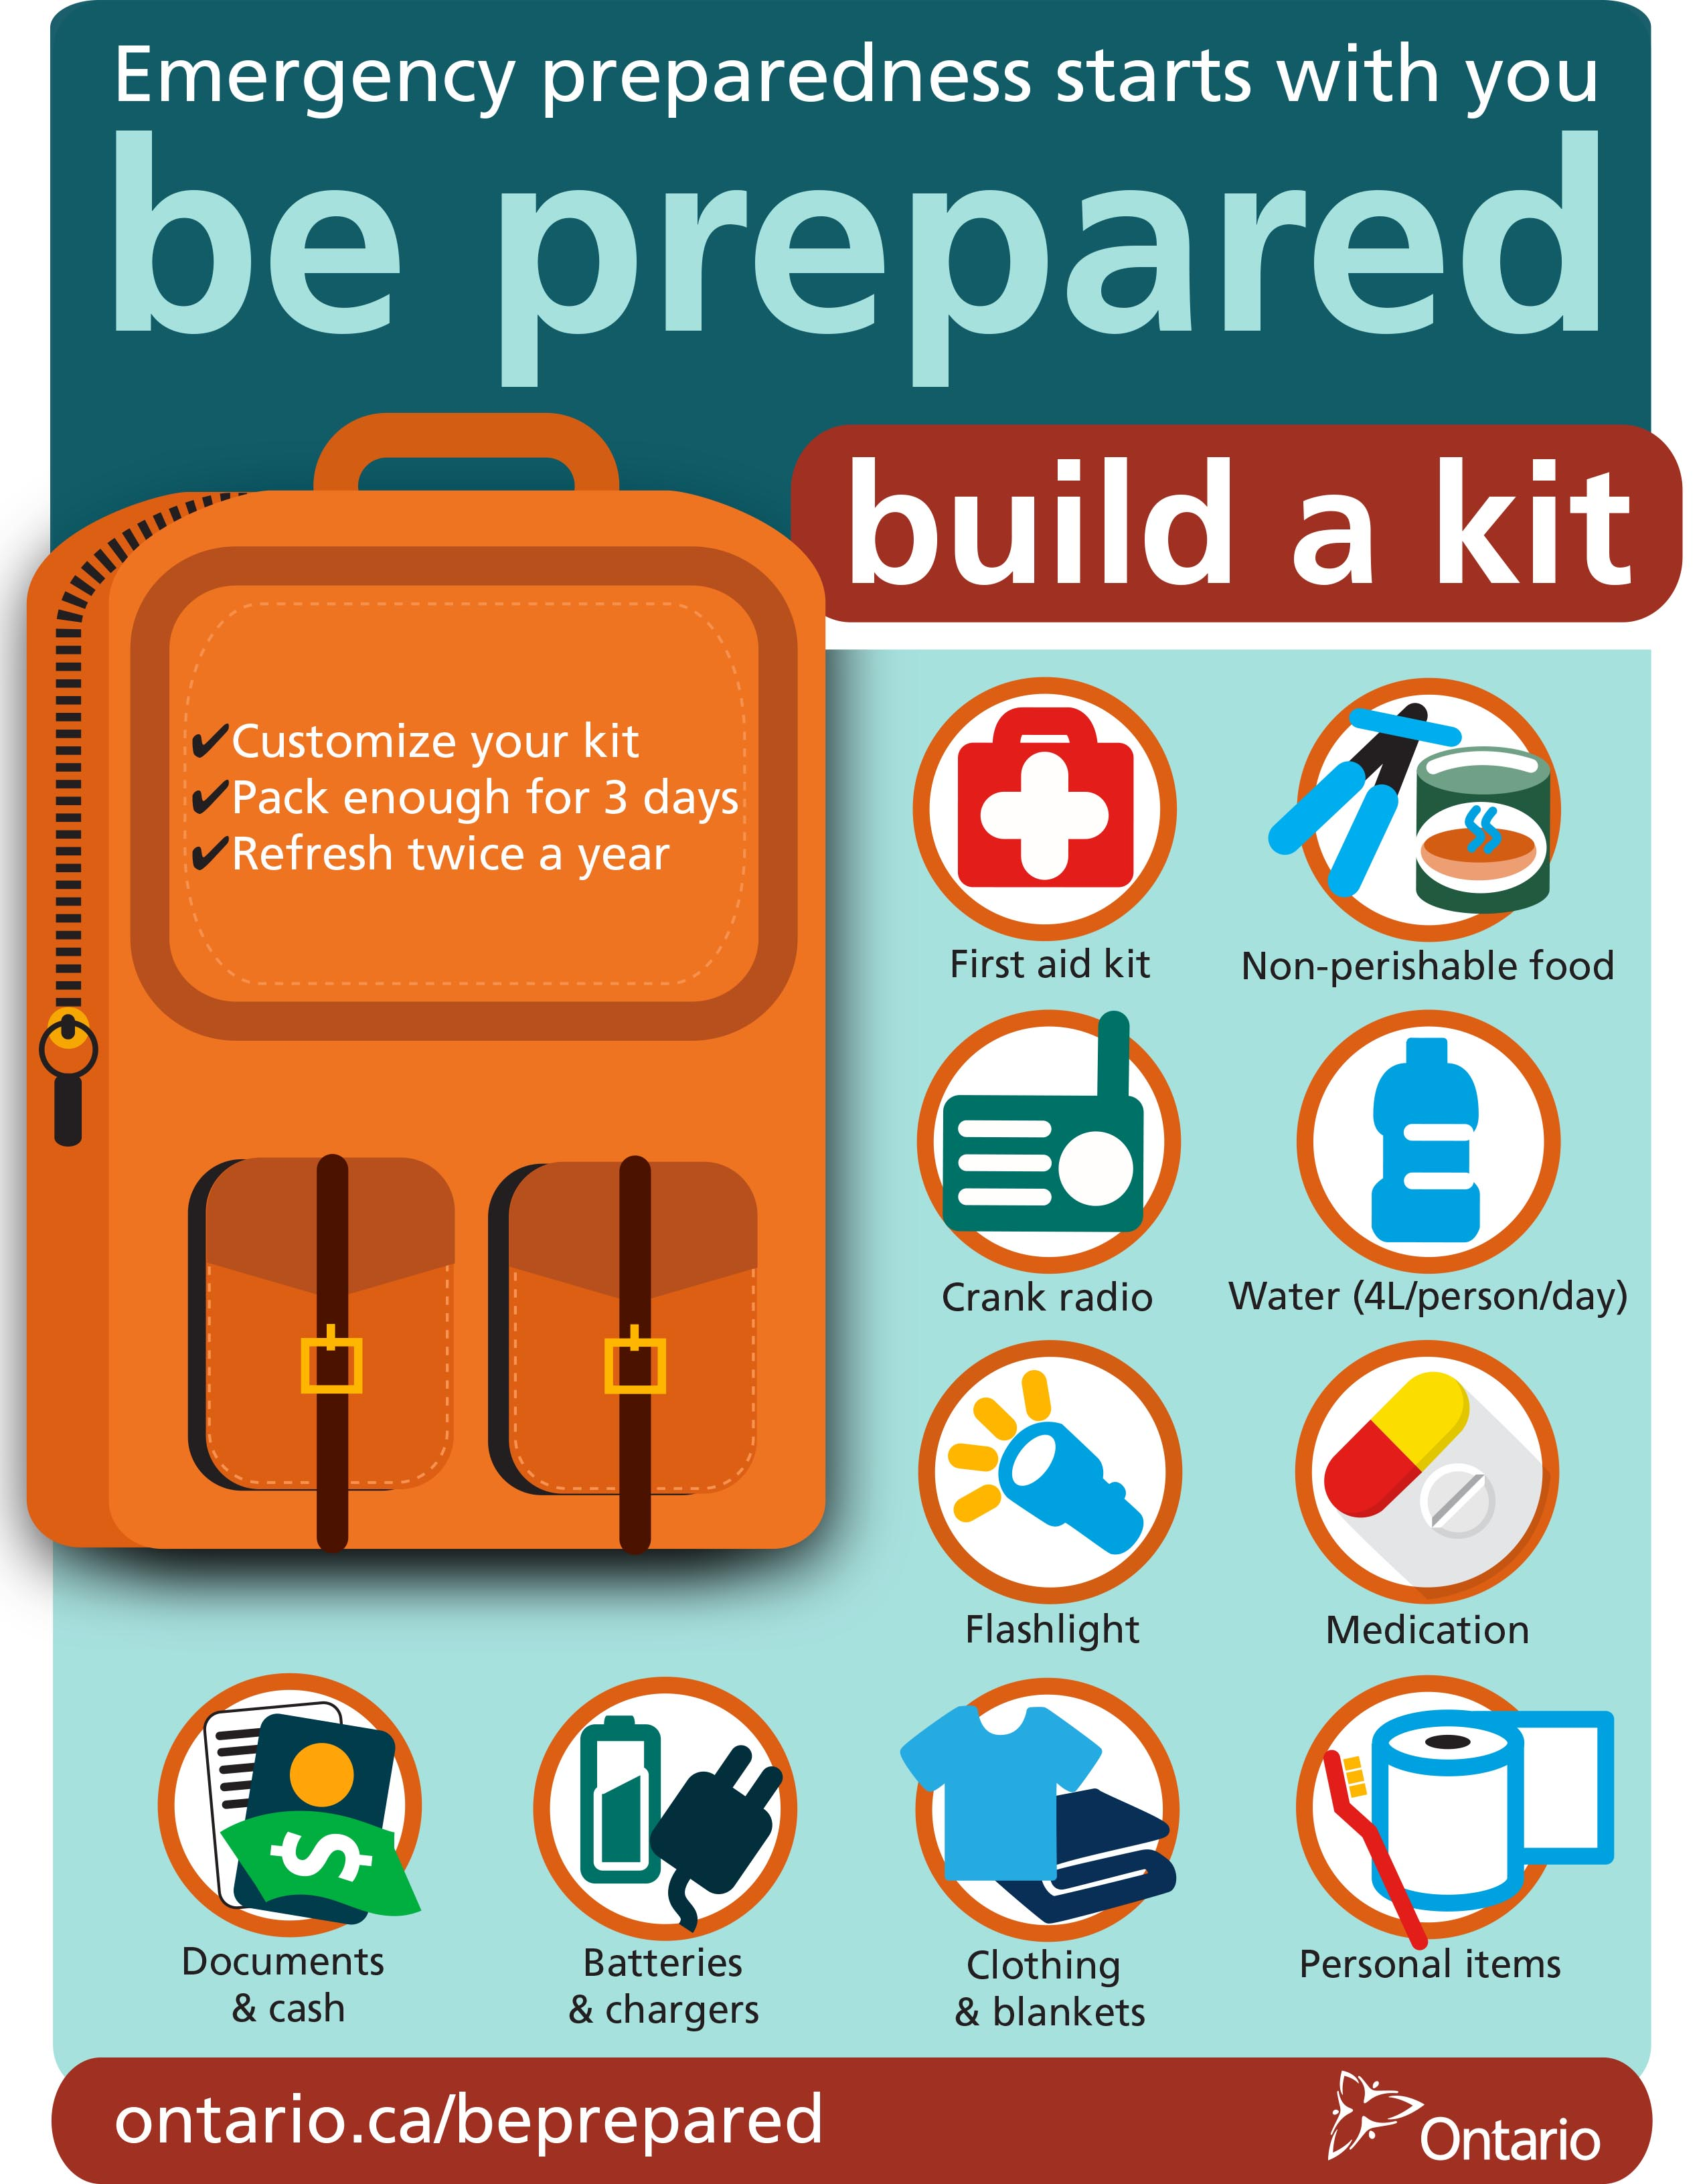 Image Explaining What to Include in an Emergency Kit.